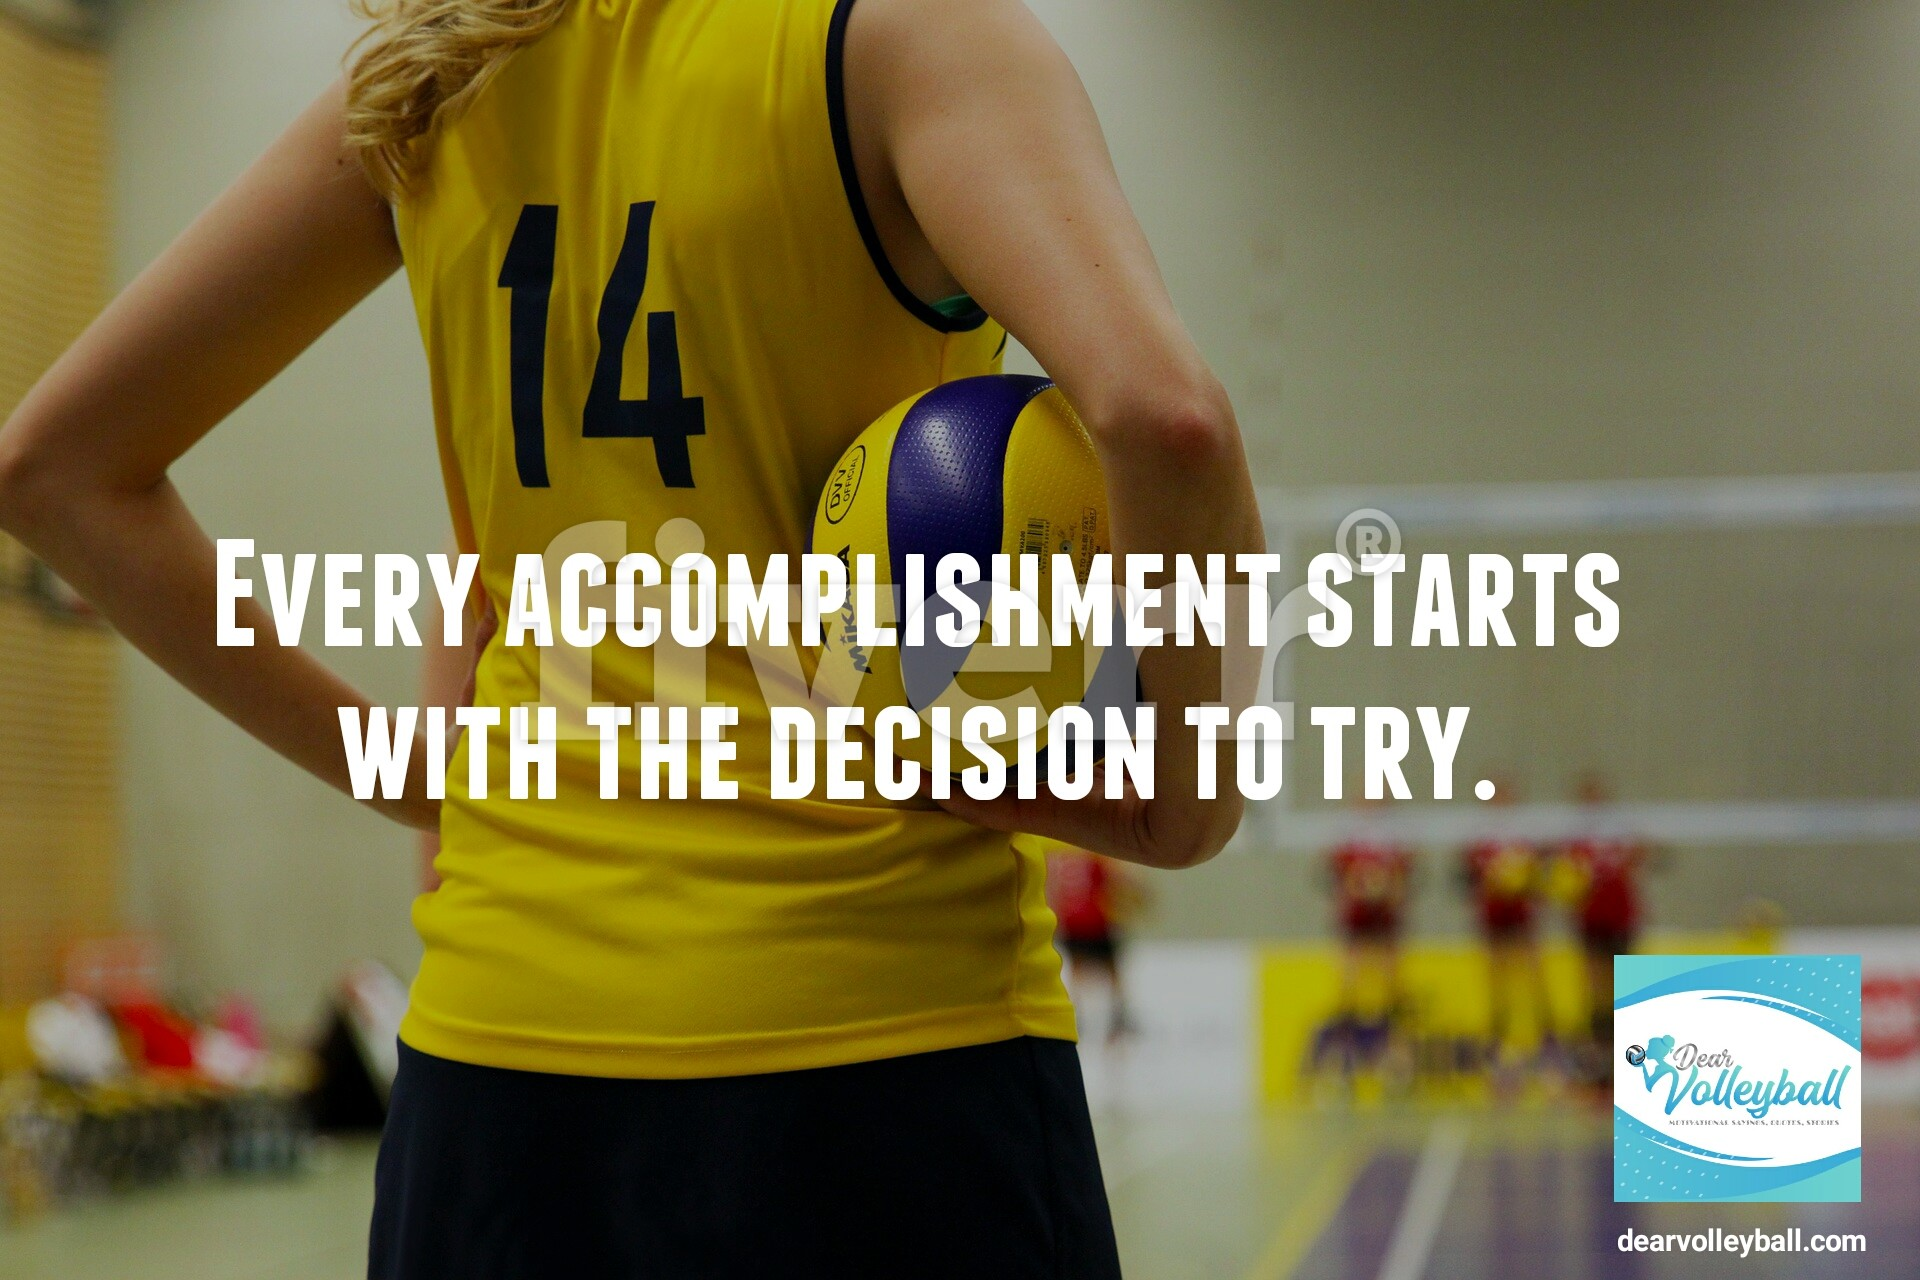 Every accomplishment starts with the decision to try and 54 short inspirational quotes on DearVolleyball.com